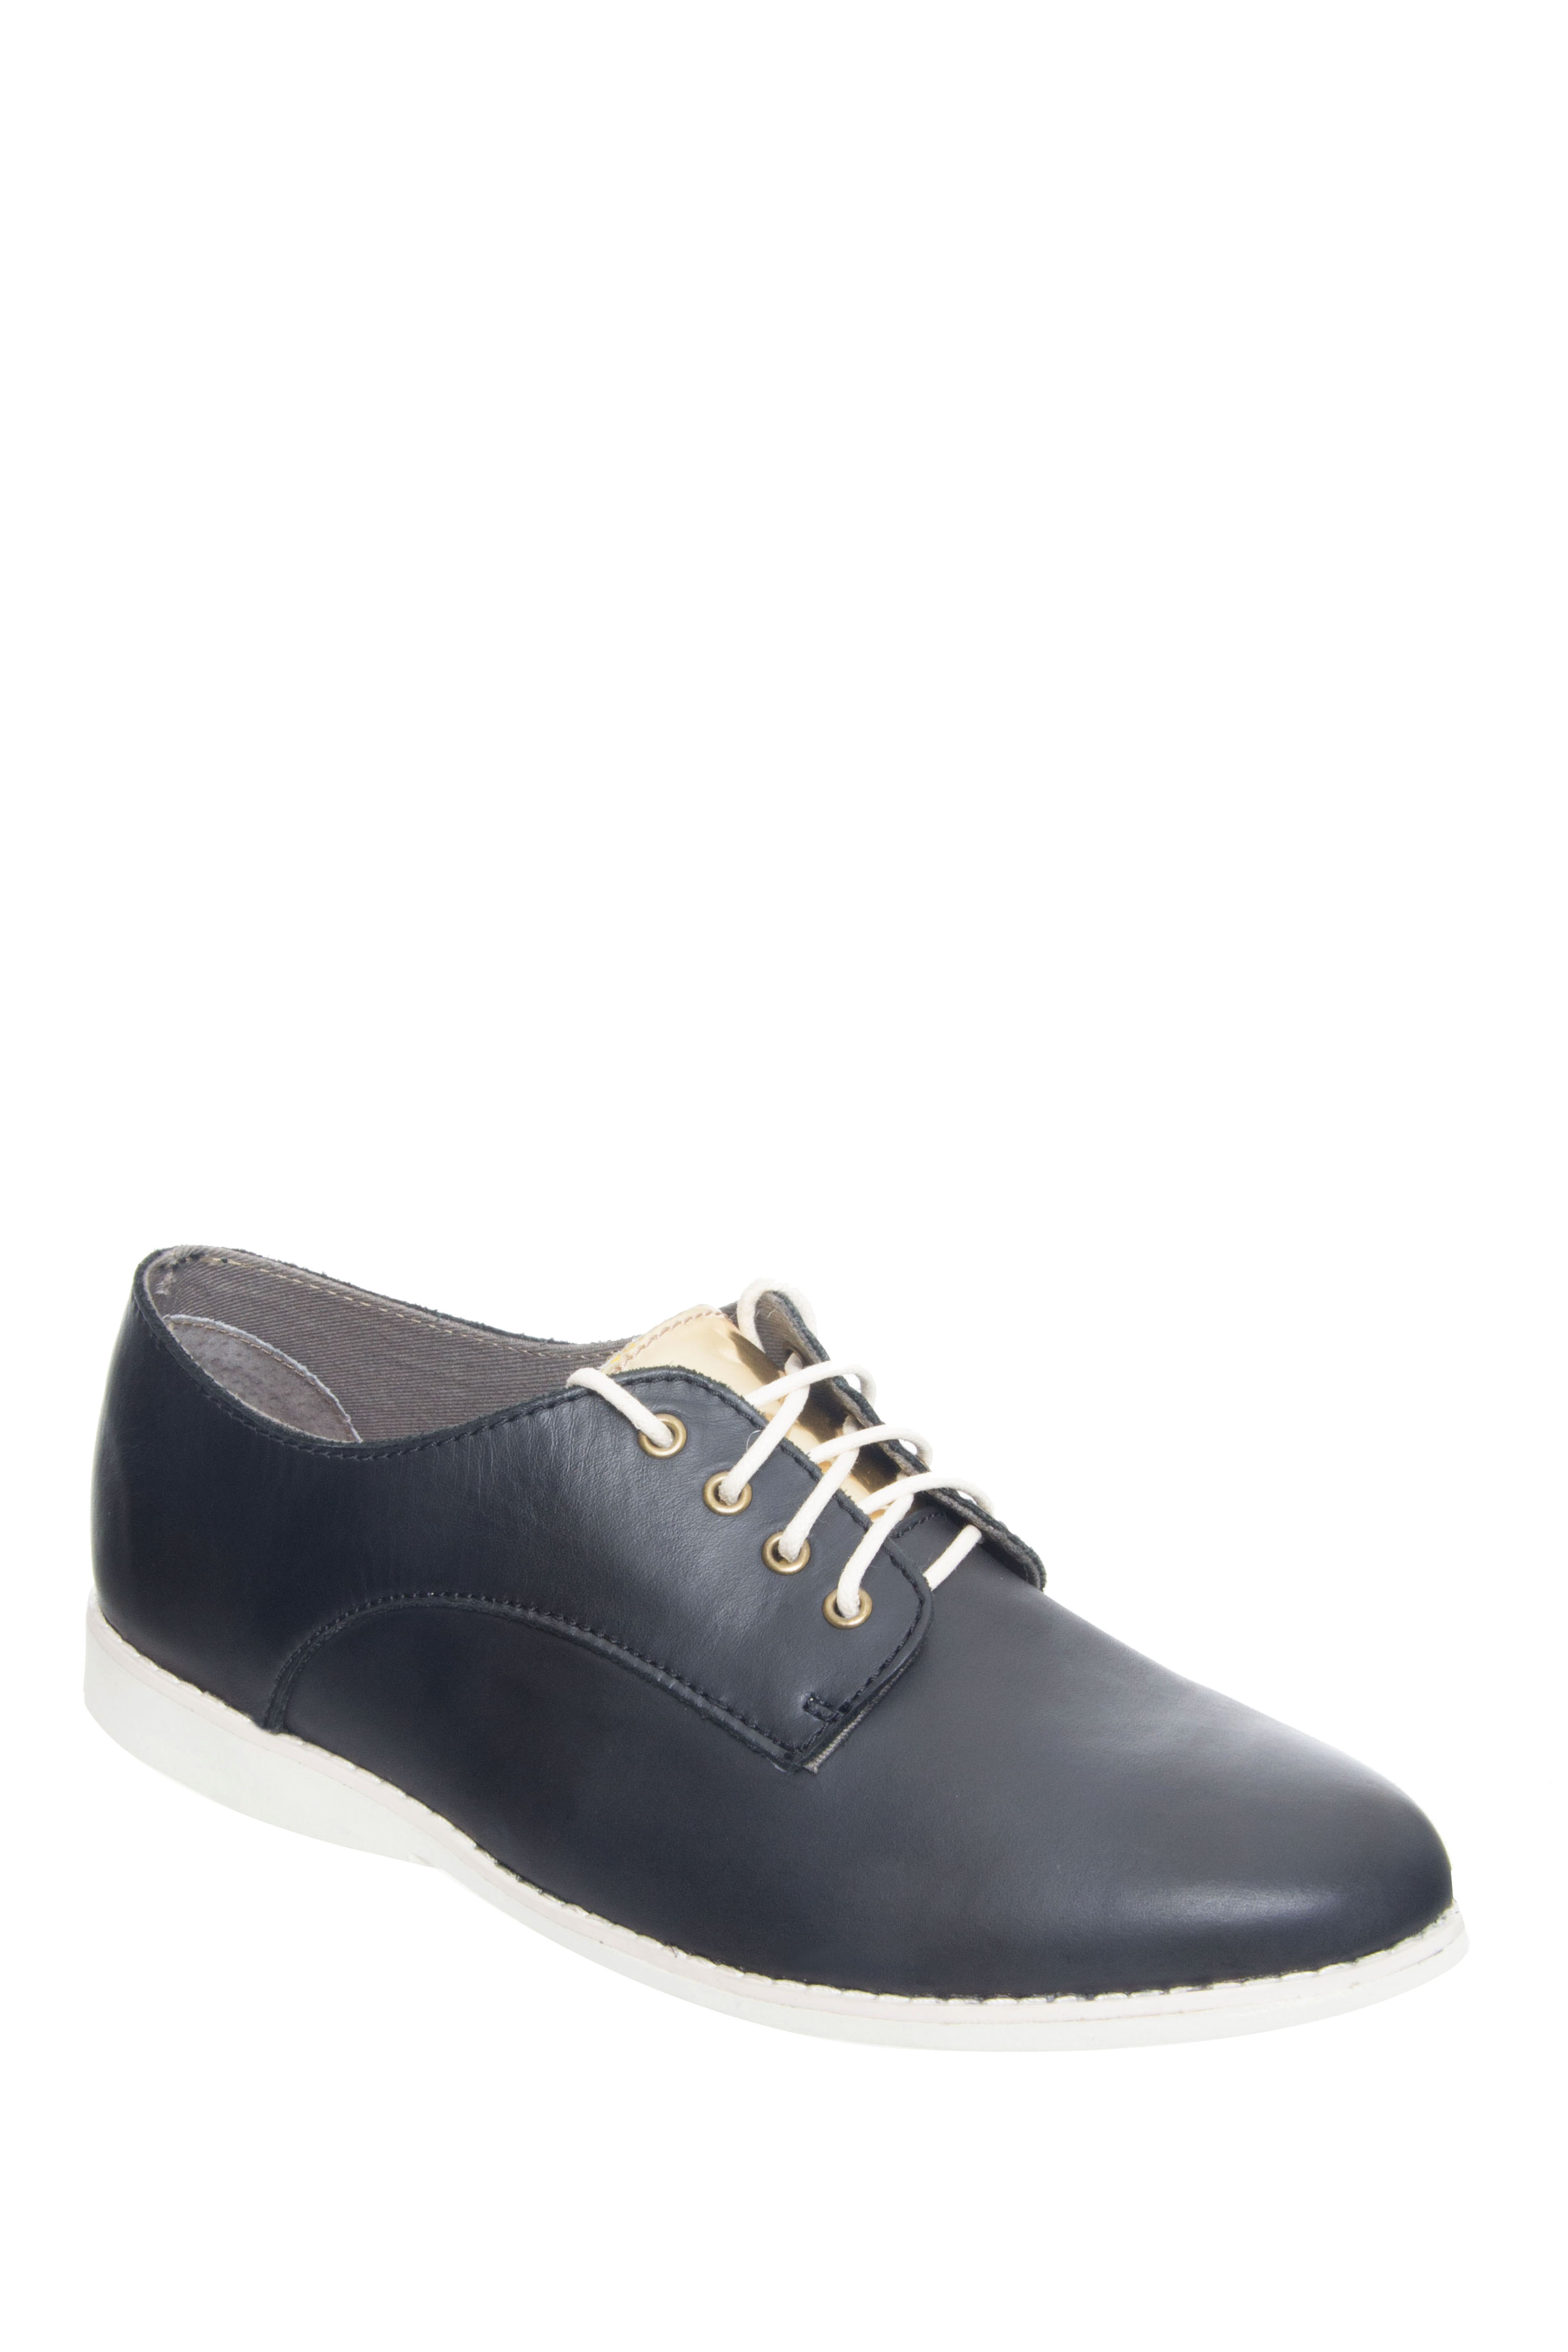 ROLLIE NATION Derby Minimal Shoes - Black